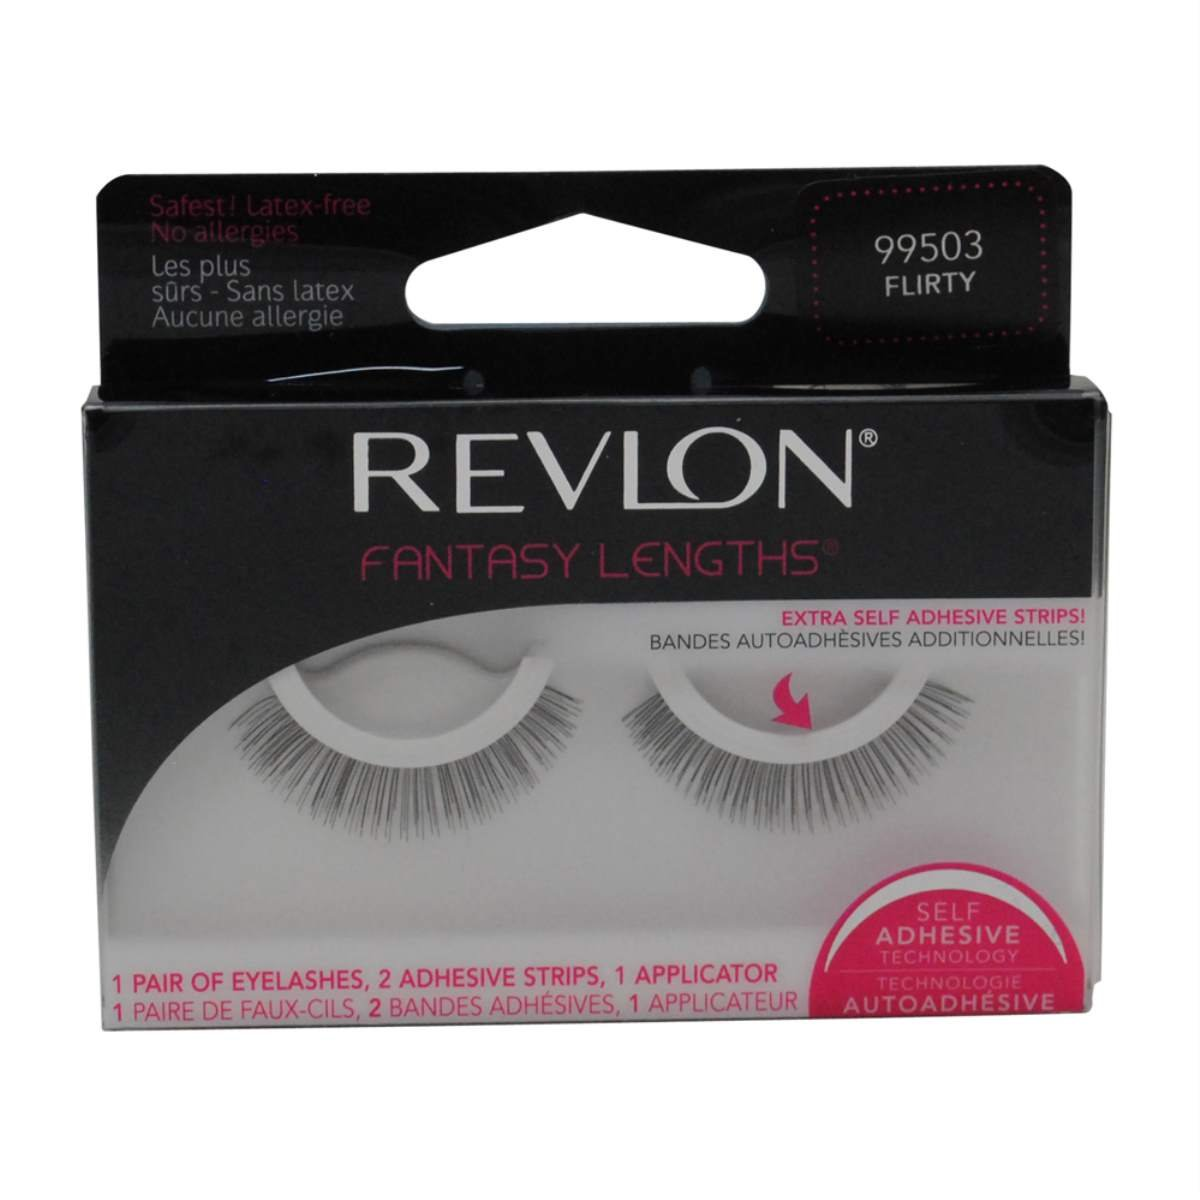 z.Revlon Fantasy Lengths Self-Adhesive Lashes Flirty #503 (99503)